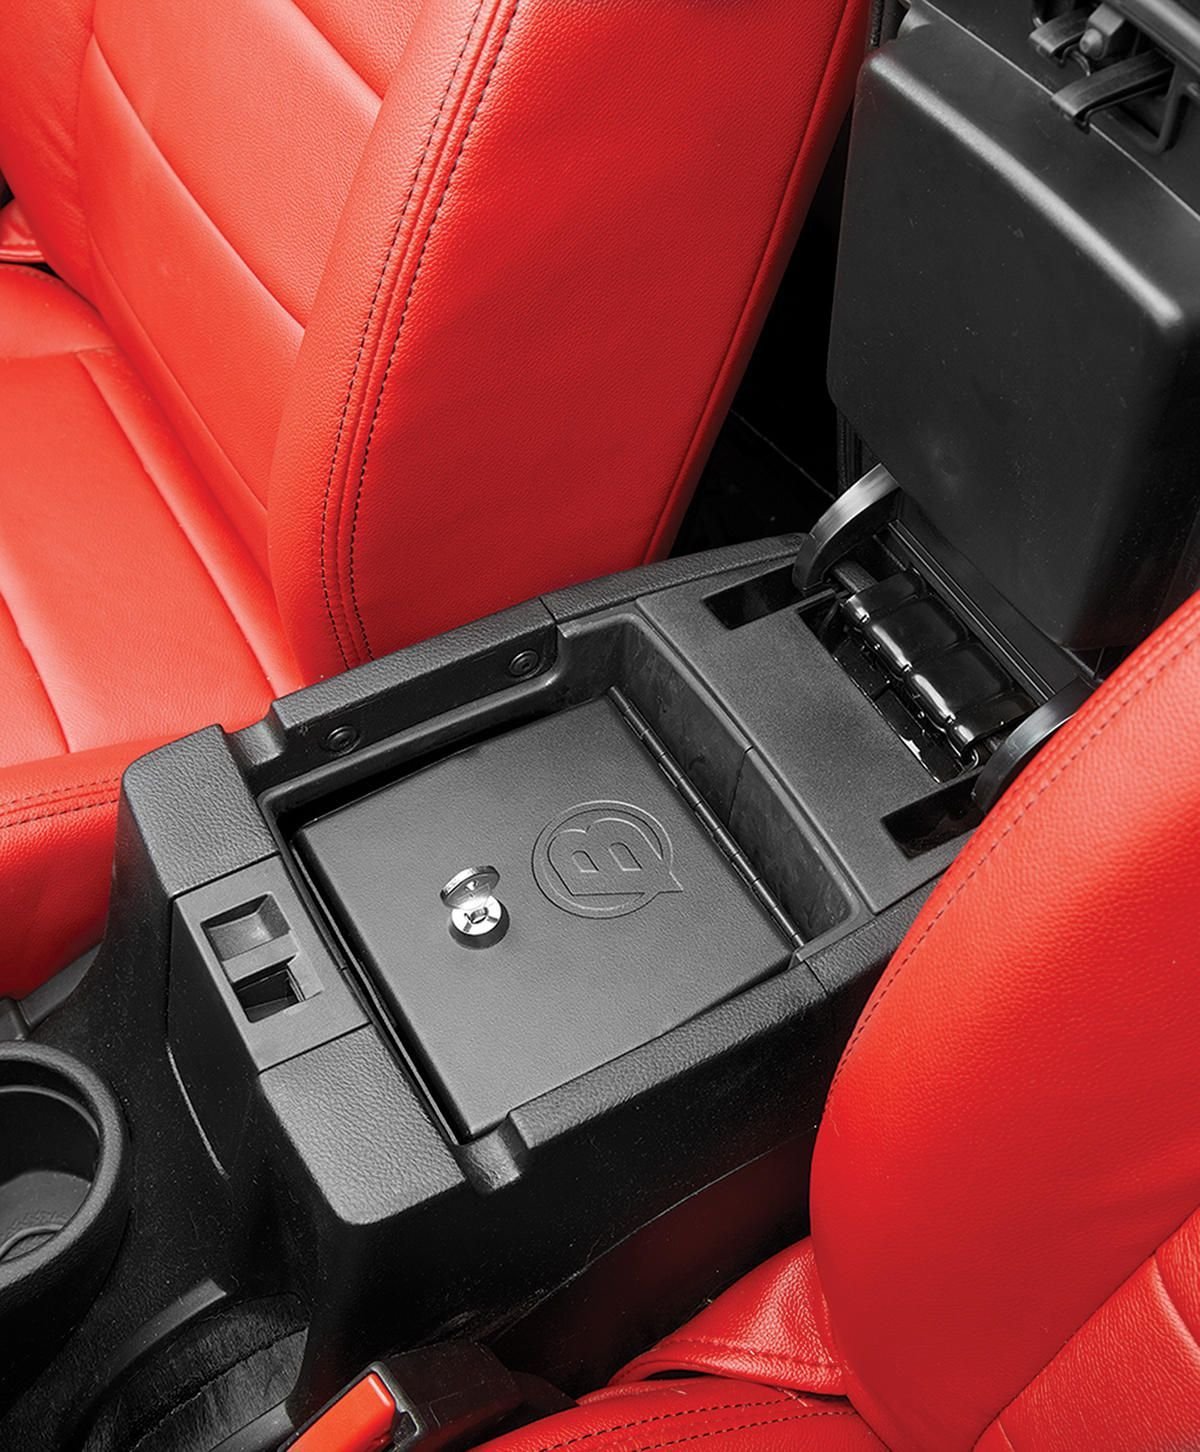 We Offer Only The Best Selection Of Jk Jeep Wrangler Interior Mods